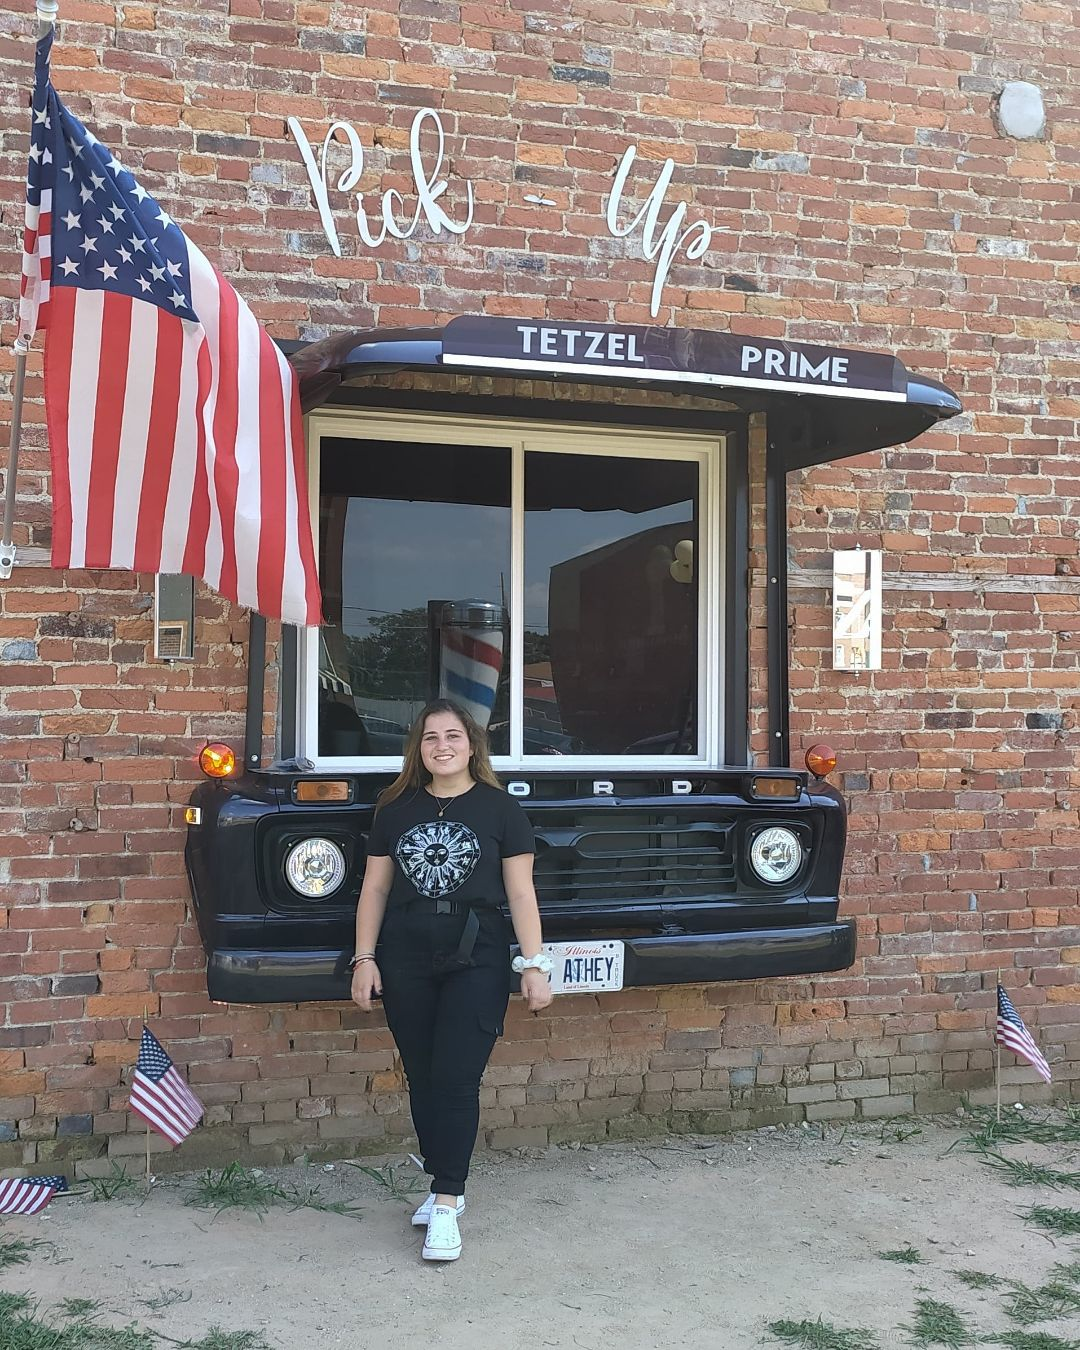 Victoria Muller posing with American flag. Photo taken by her host mother in Casey, Illinois.